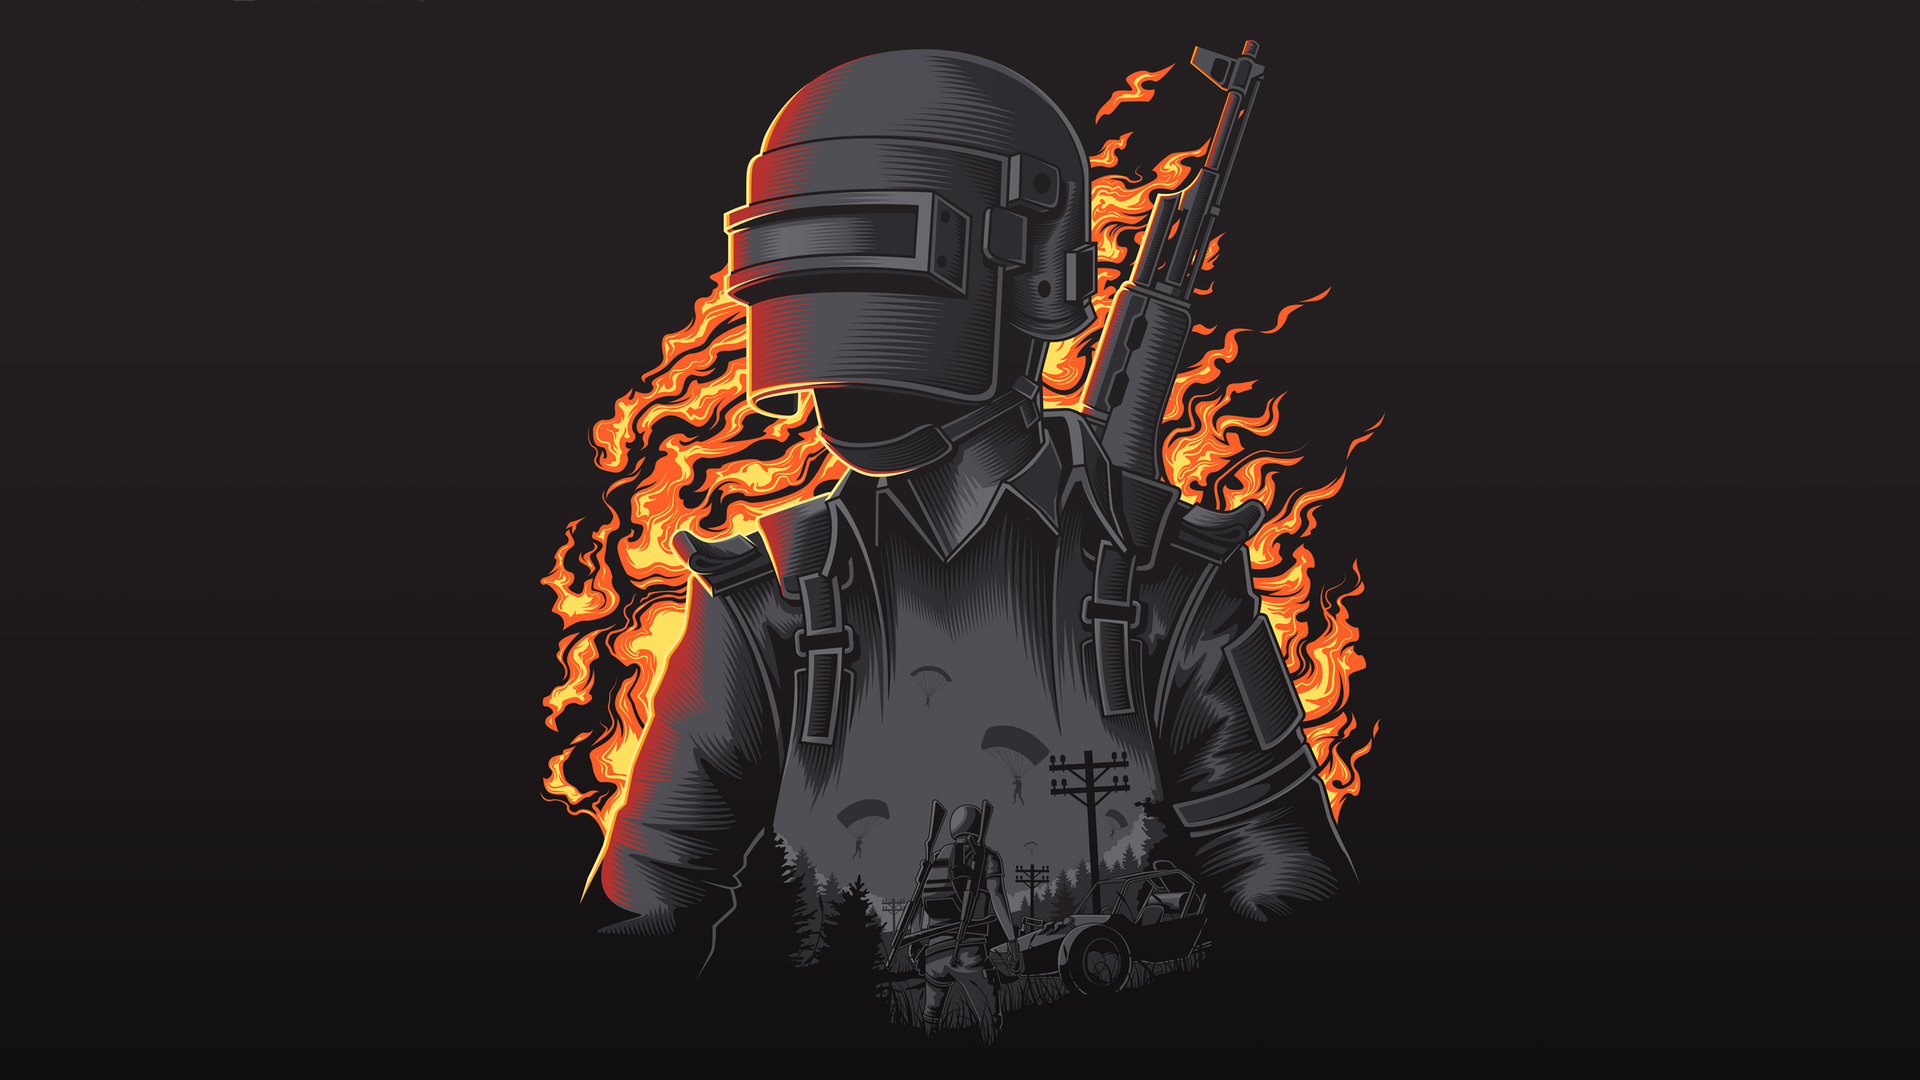 Top 13 Pubg Wallpapers In Full Hd For Pc And Phone: 1920x1080 Pubg Illustration 4k Laptop Full HD 1080P HD 4k